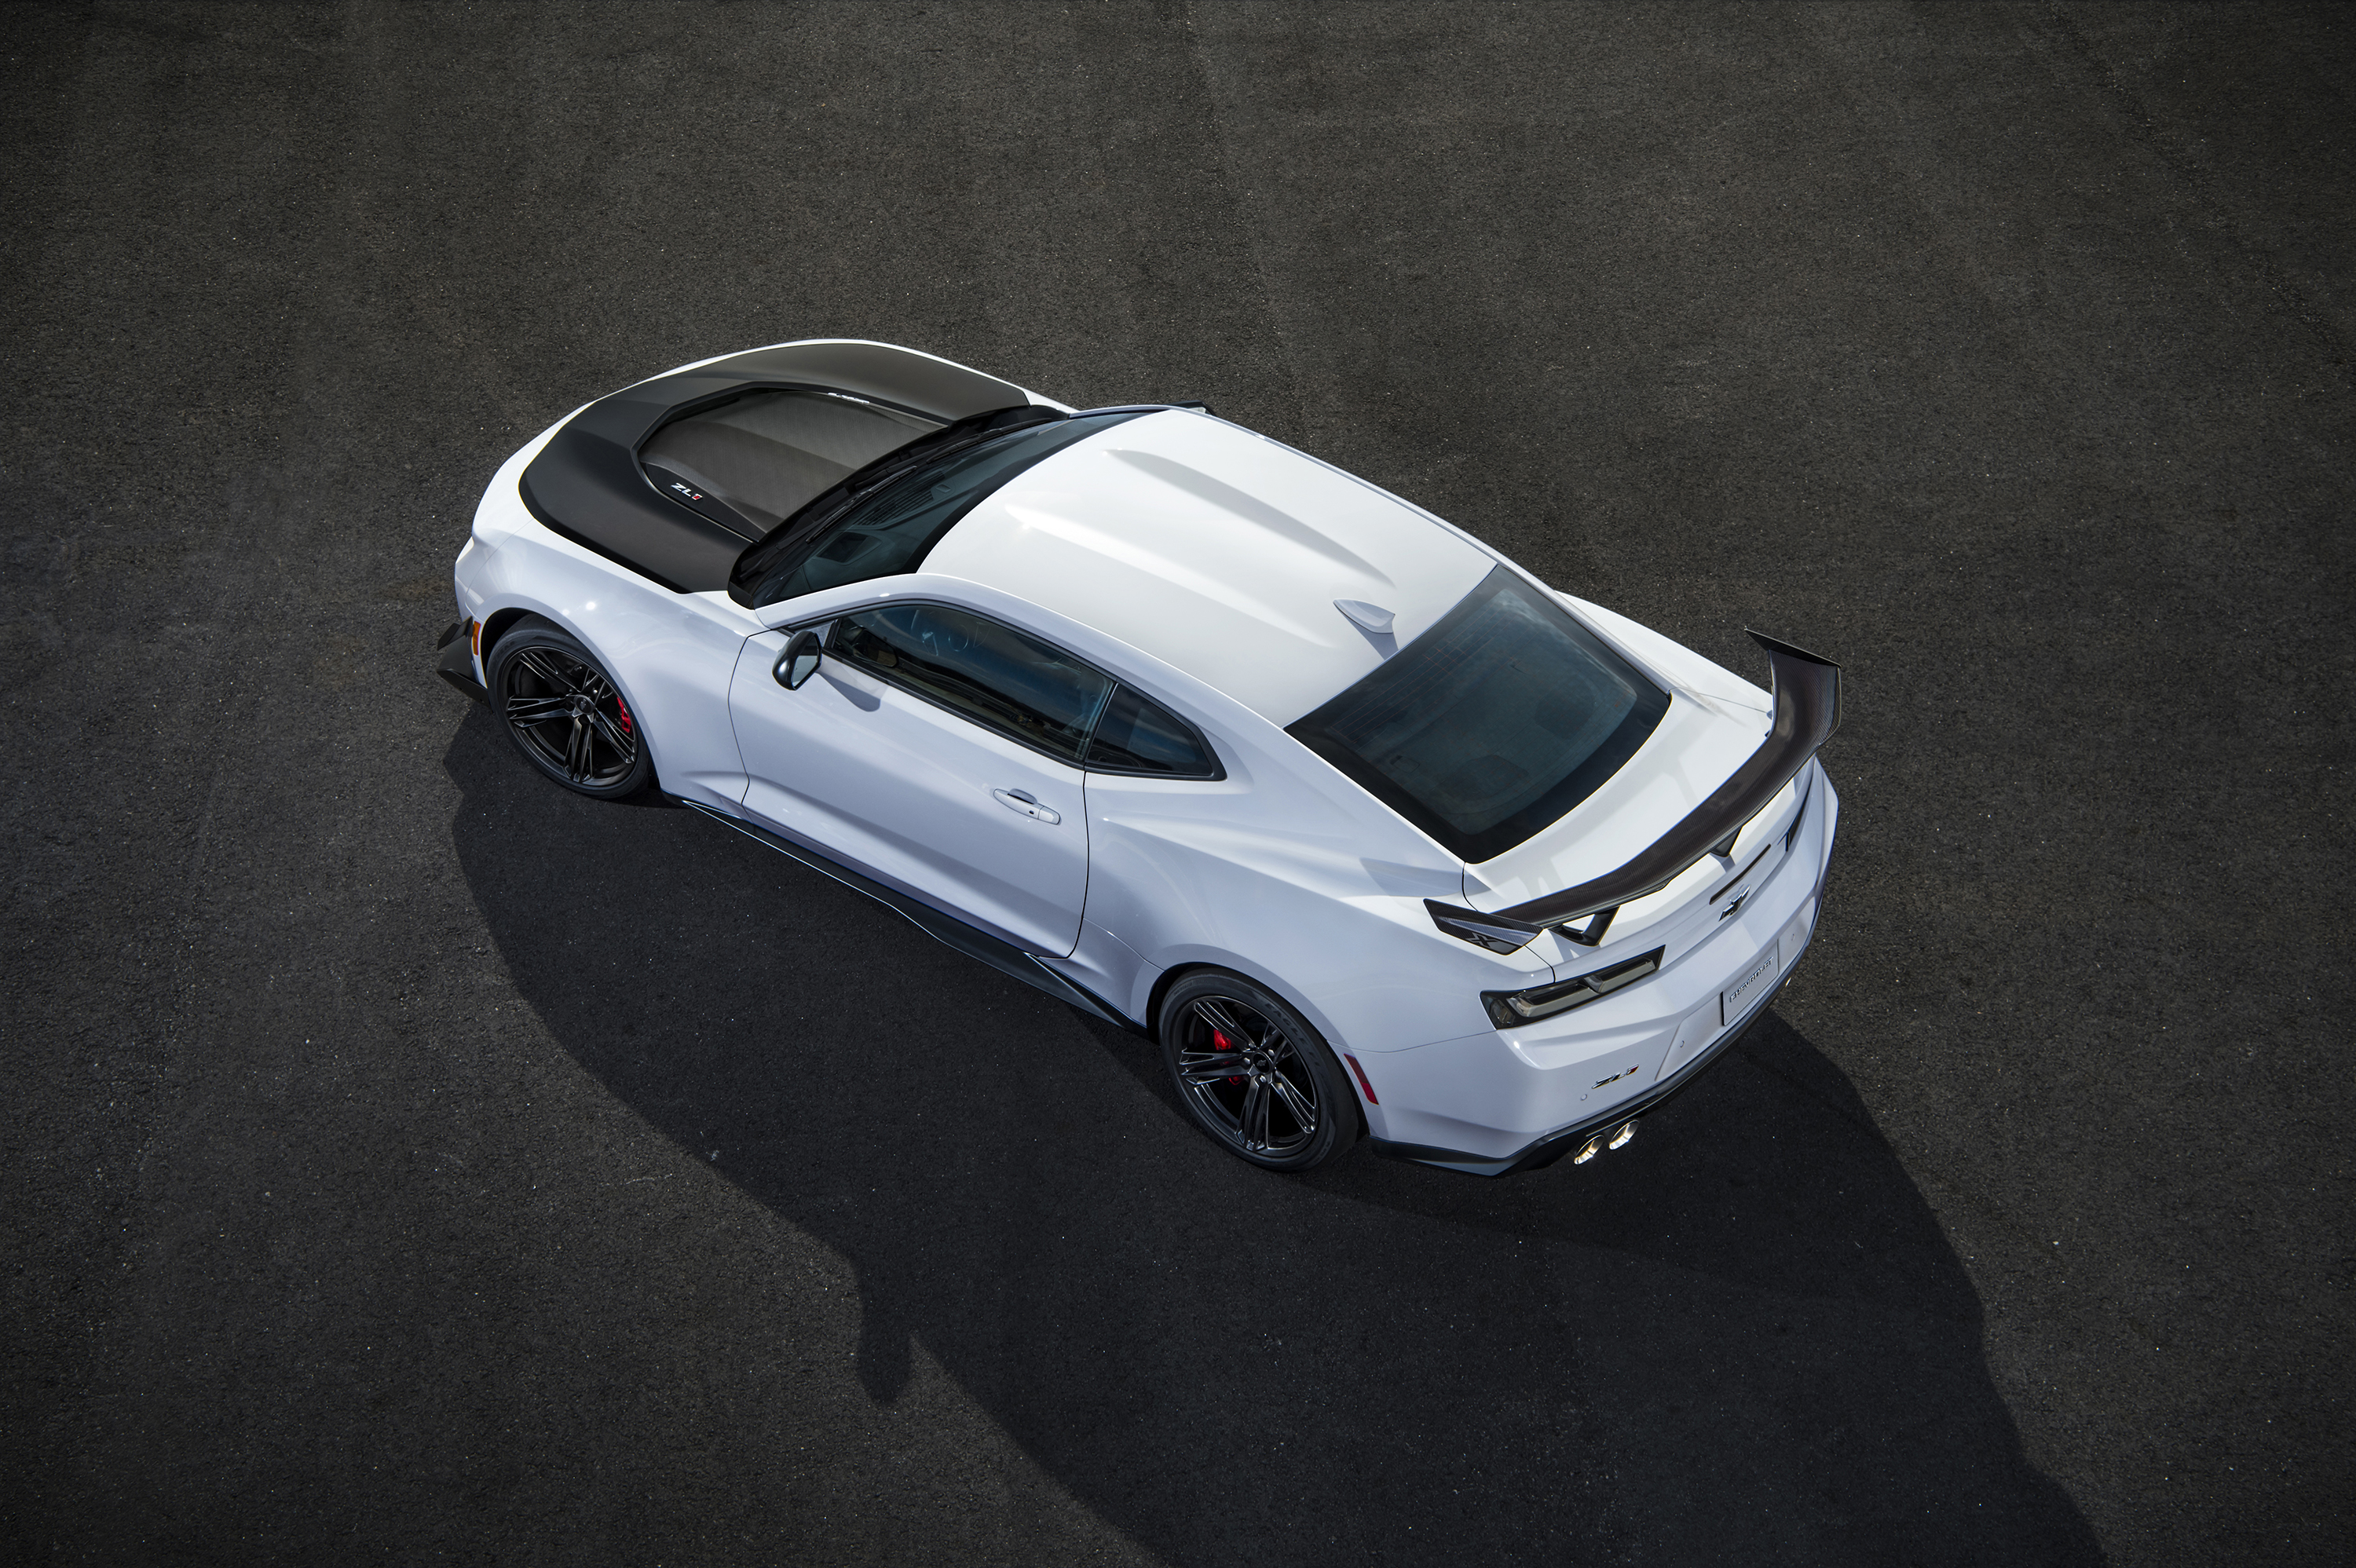 The Giant 2018 Chevrolet Camaro ZL1 1LE Photo Gallery - The Drive